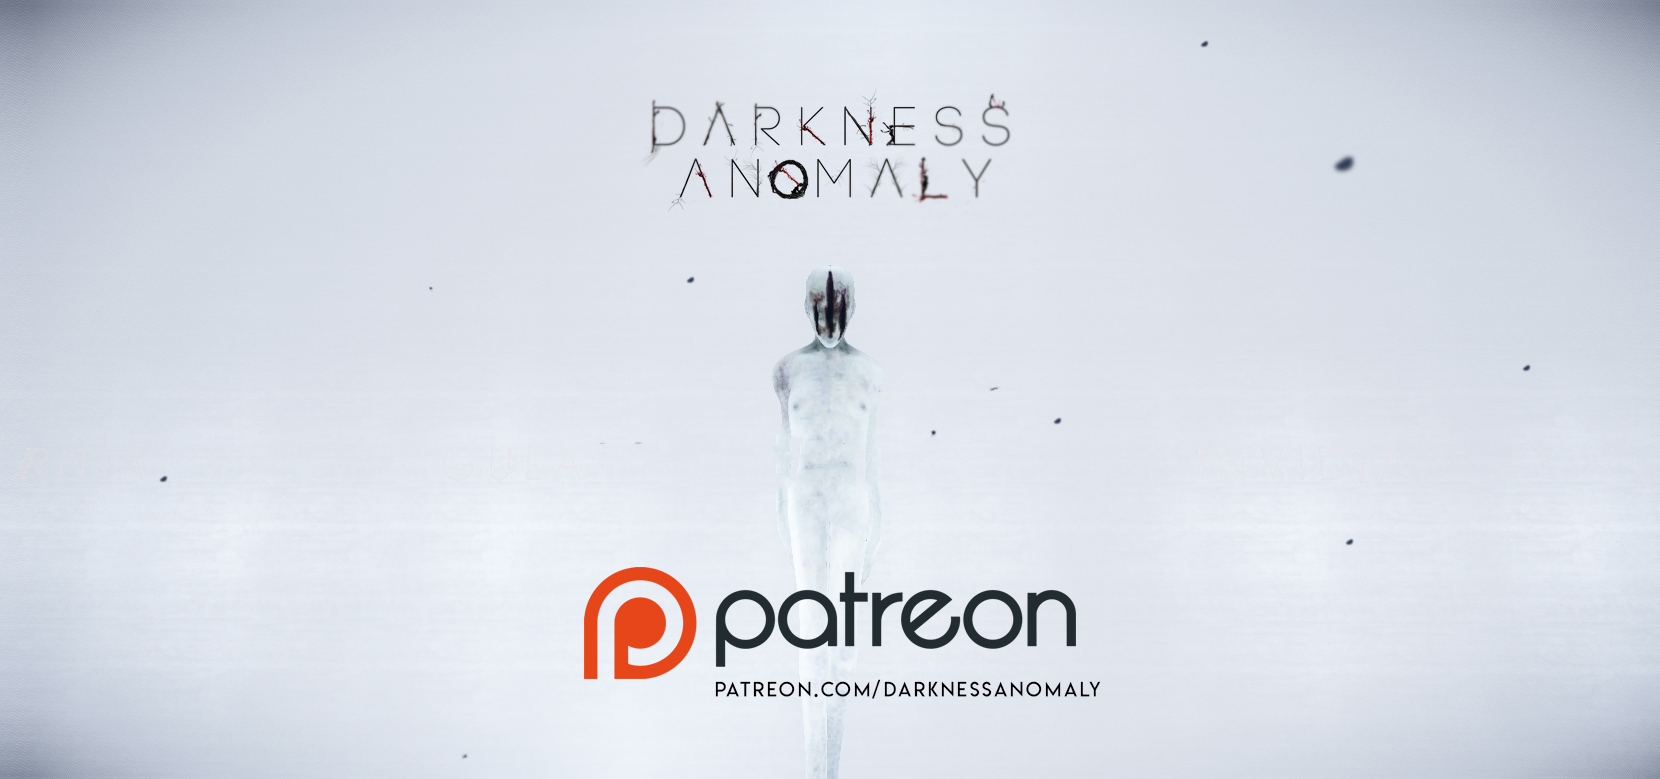 Darkness Anomaly Patreon